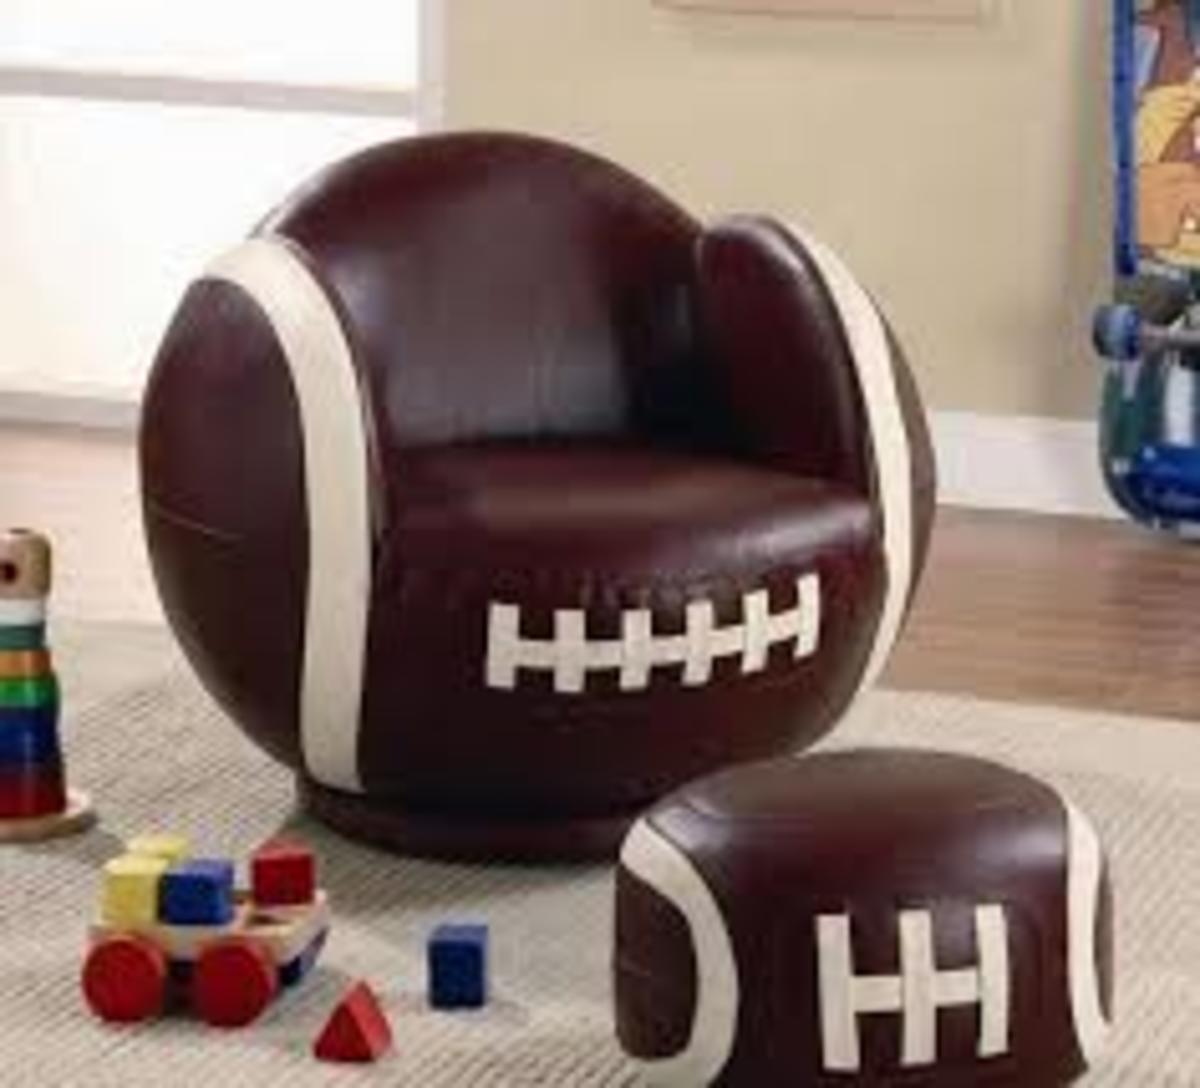 Football Chair and Matching Foot Stool in classic American Football brown leather with white stitching